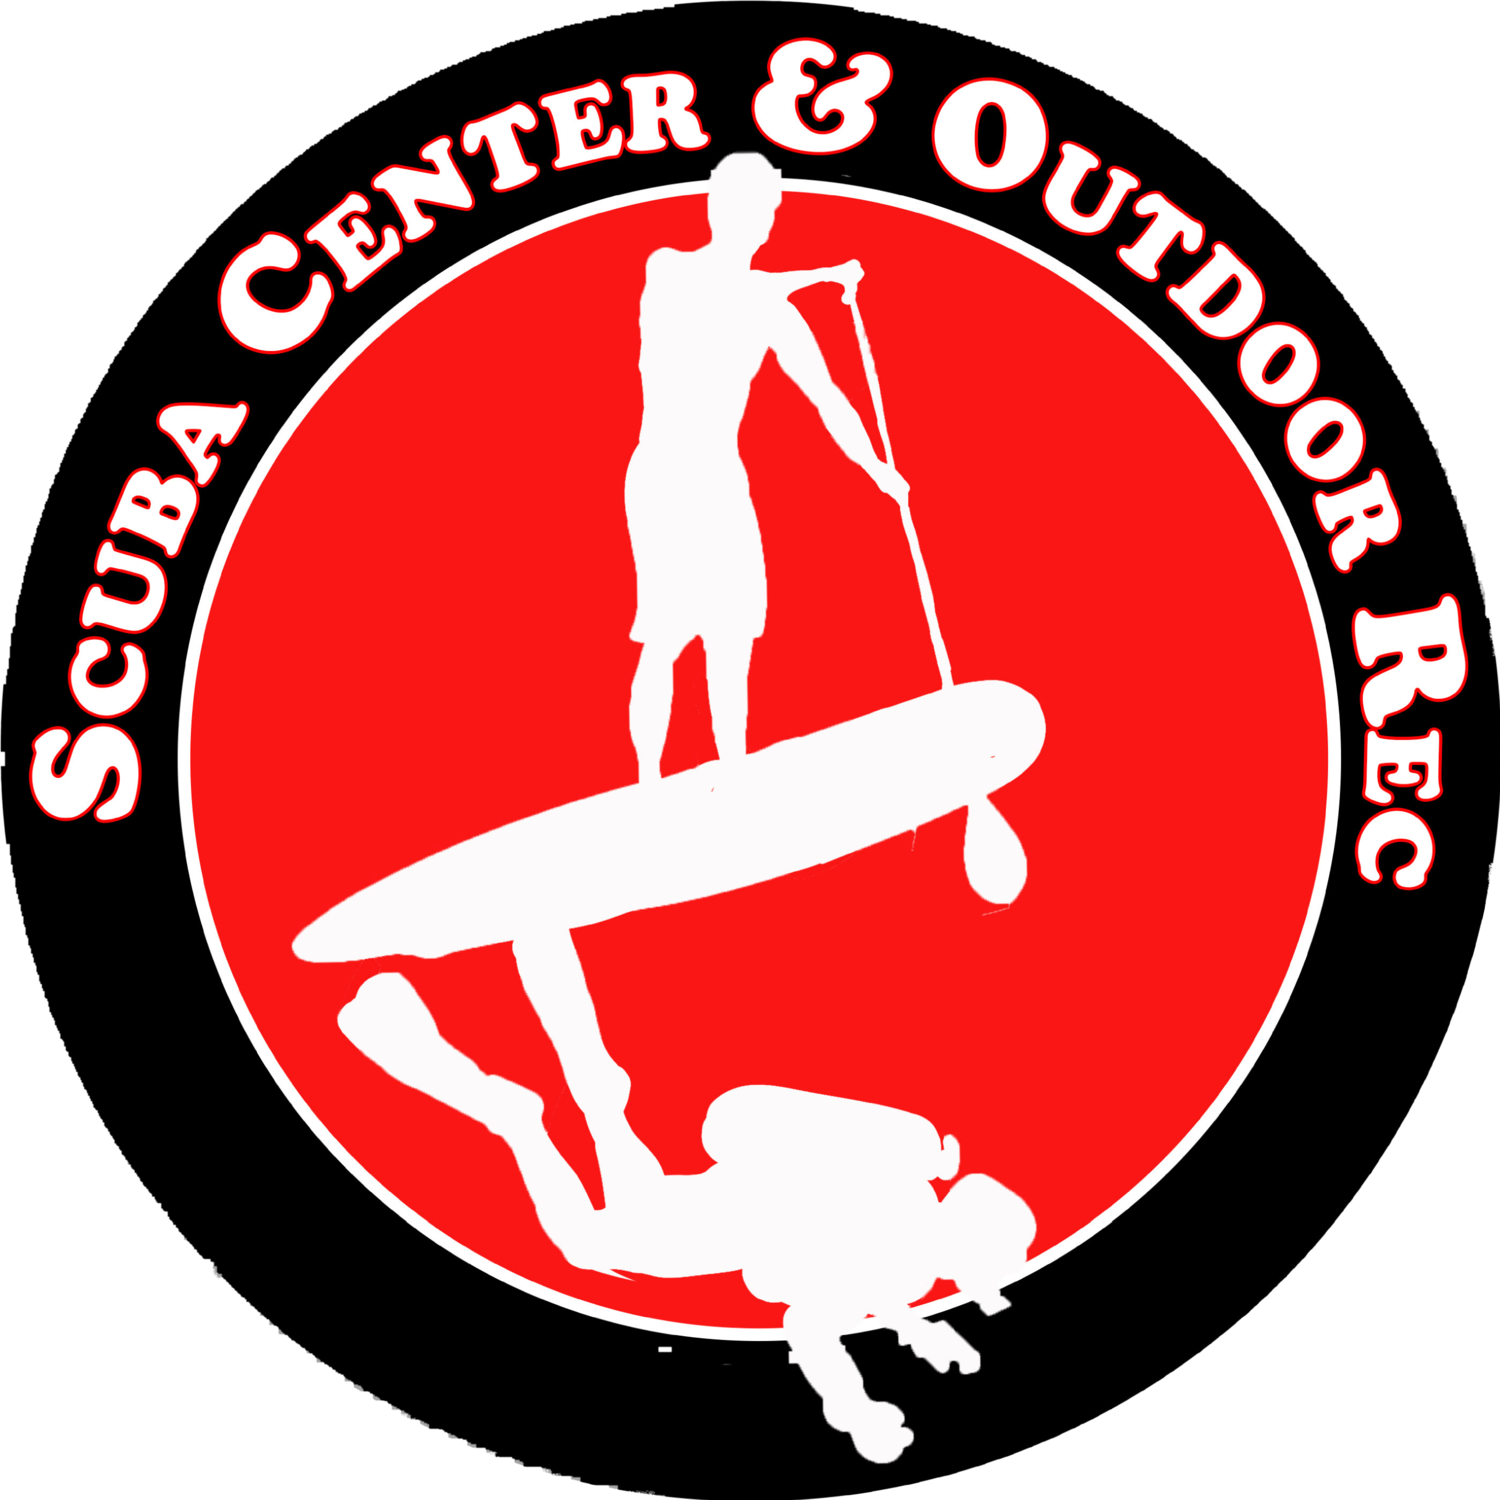 Scuba Center and Outdoor Rec